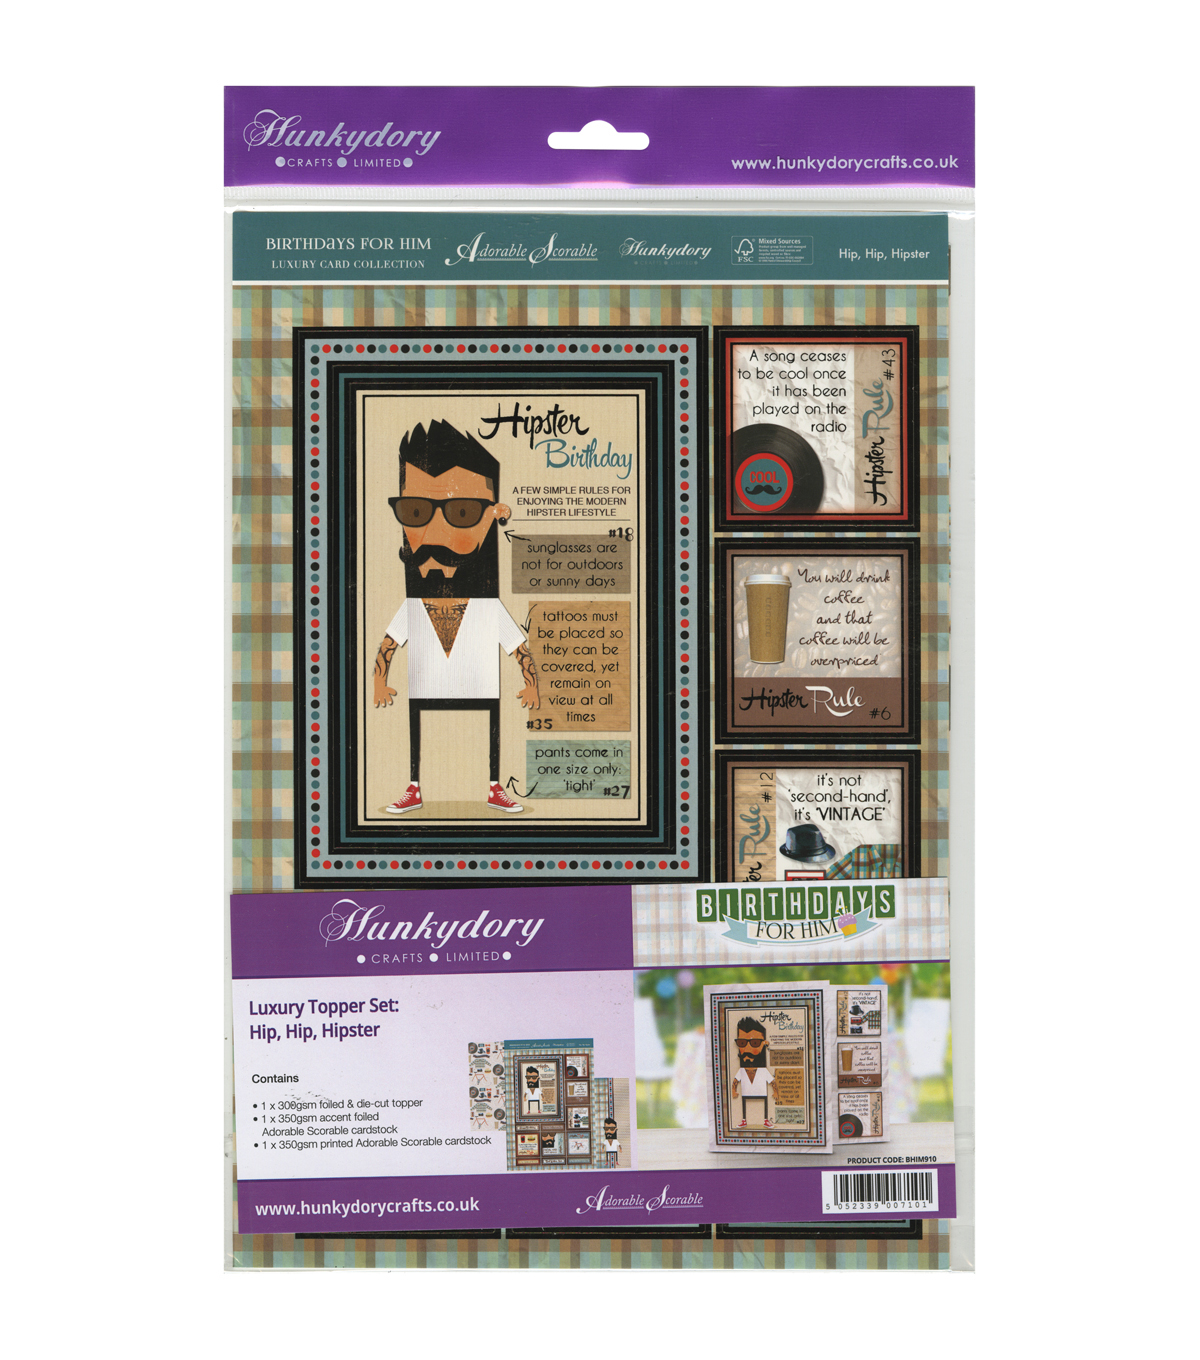 Hunkydory Crafts Birthdays For Him Luxury Topper Set A4-Hip, Hip Hipster